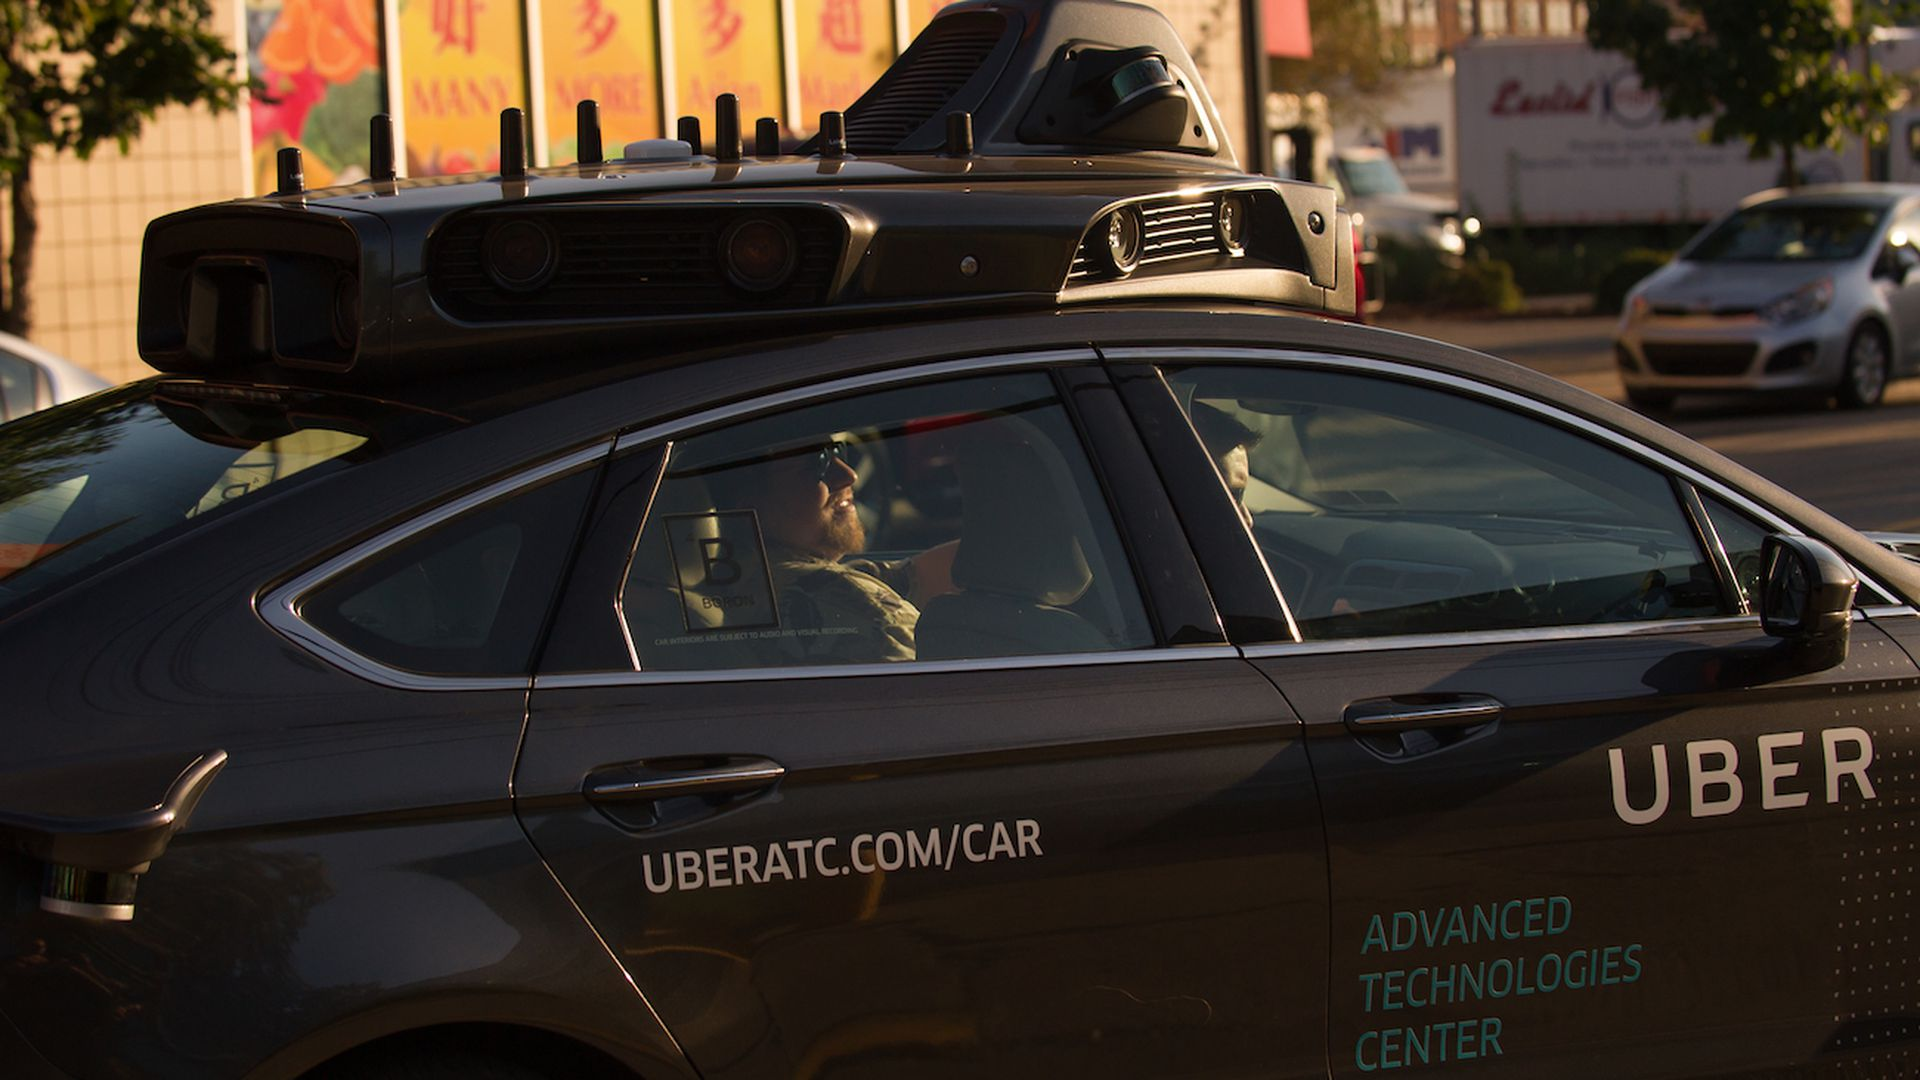 Uber raises $1 billion for its self-driving unit